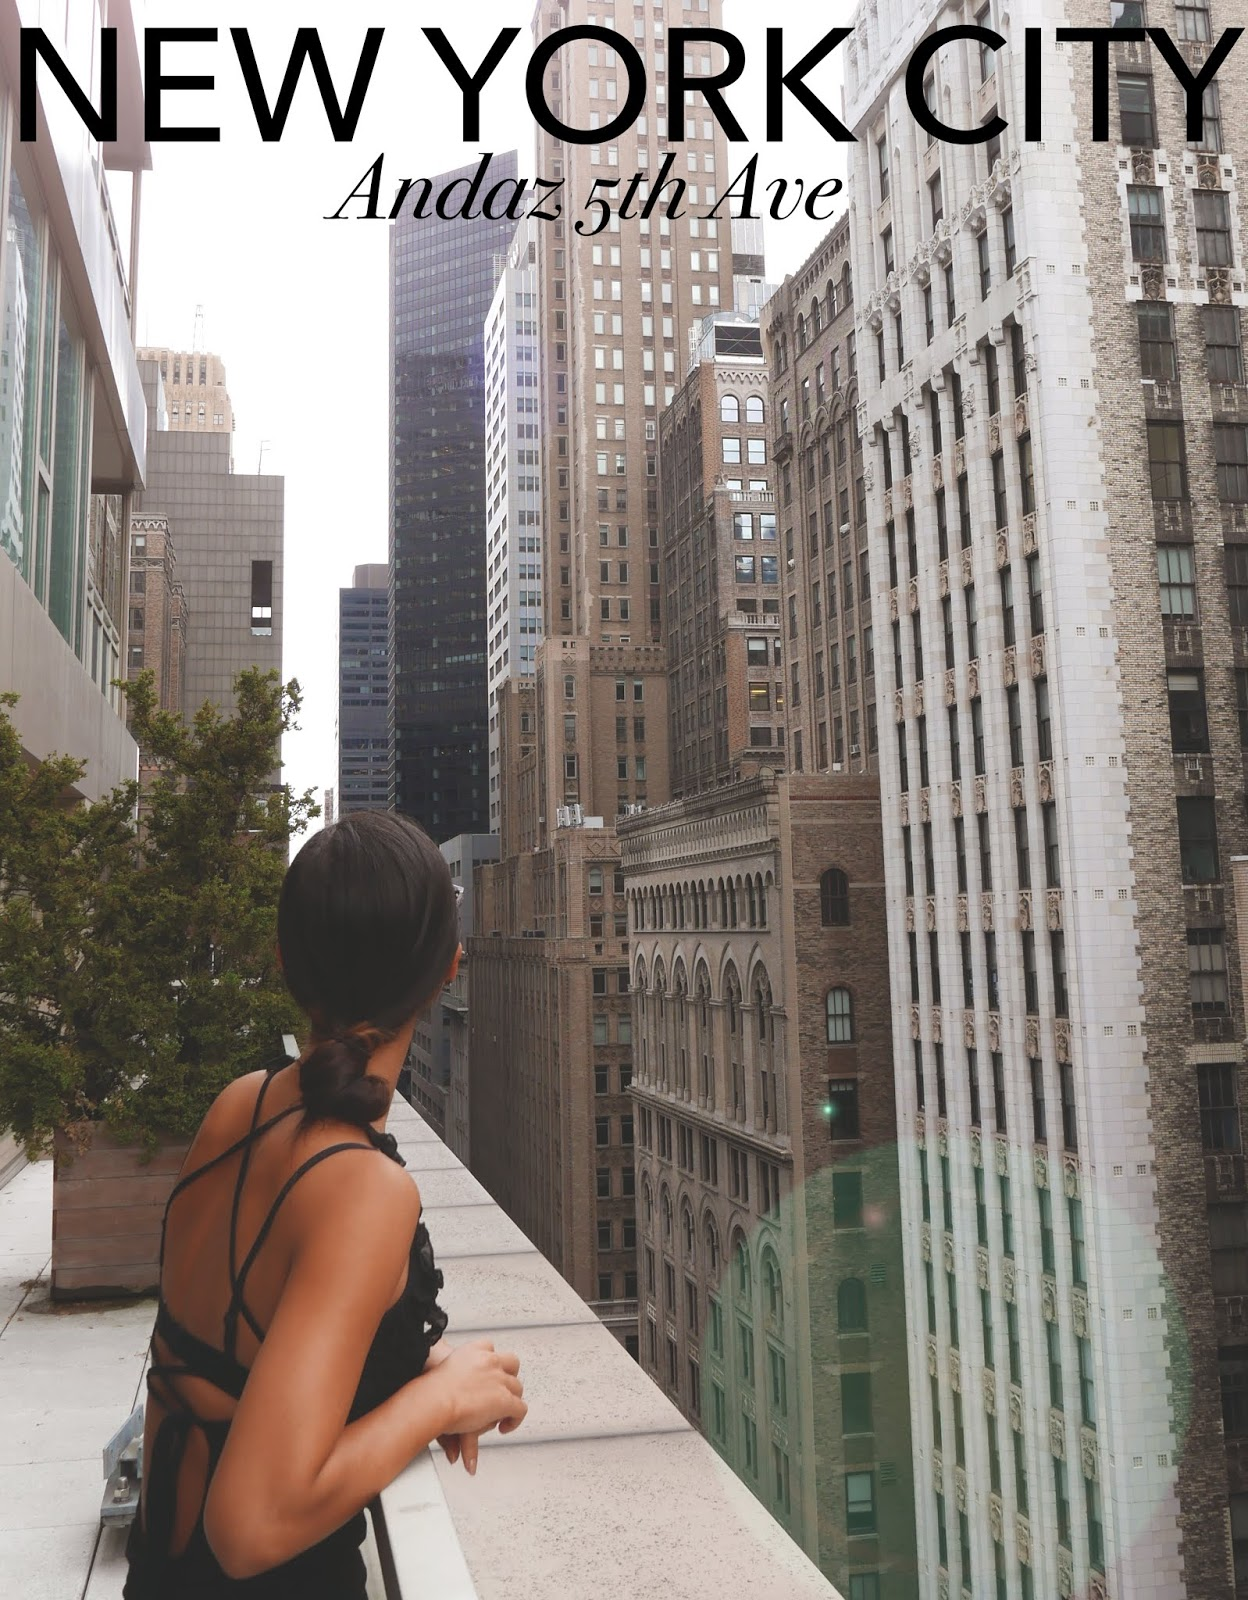 Euriental | fashion & luxury travel | Andaz 5th Avenue Terrace Suite, New York